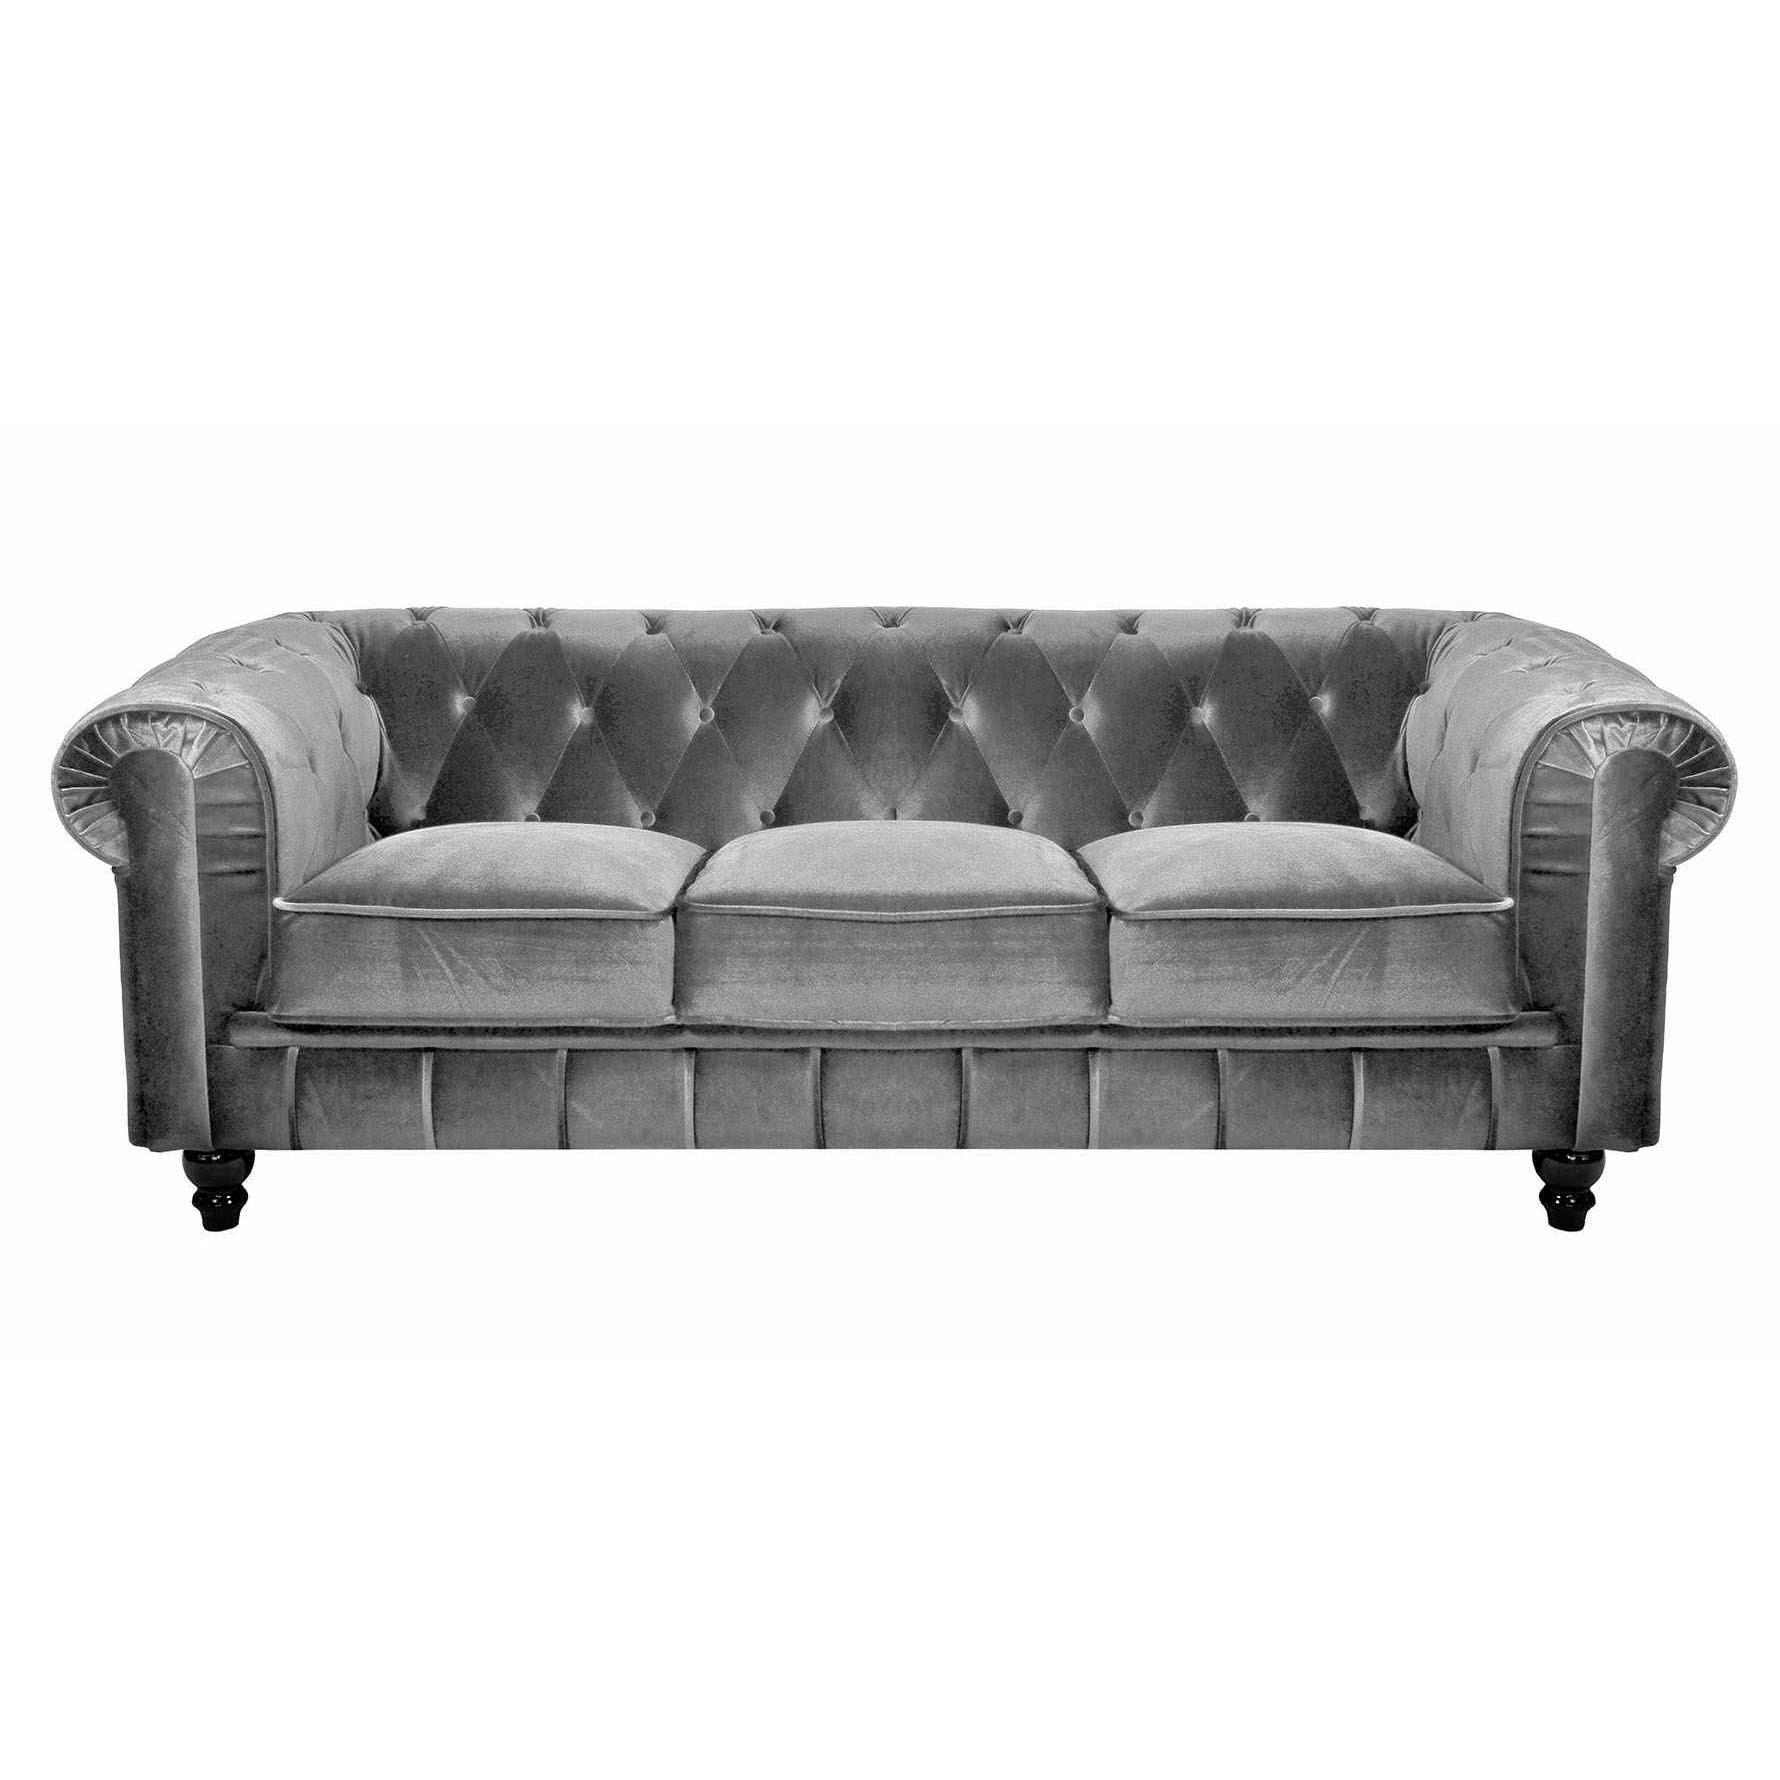 Deco in paris canape 3 places velours gris chesterfield - Canape chesterfield velour ...